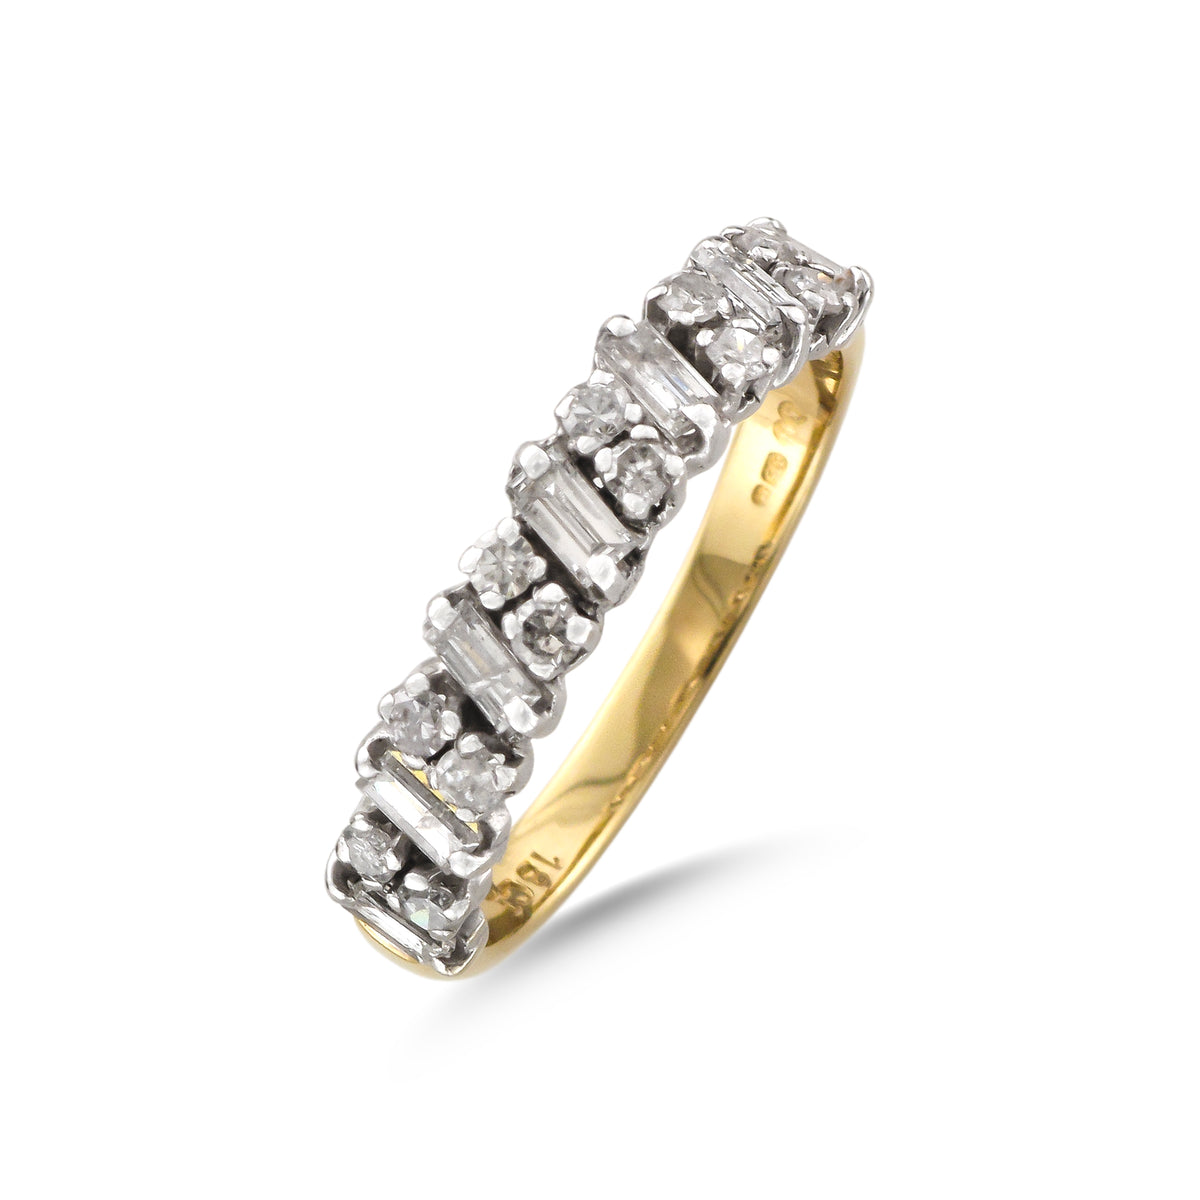 Vintage 9ct Yellow Gold Half Eternity Ring